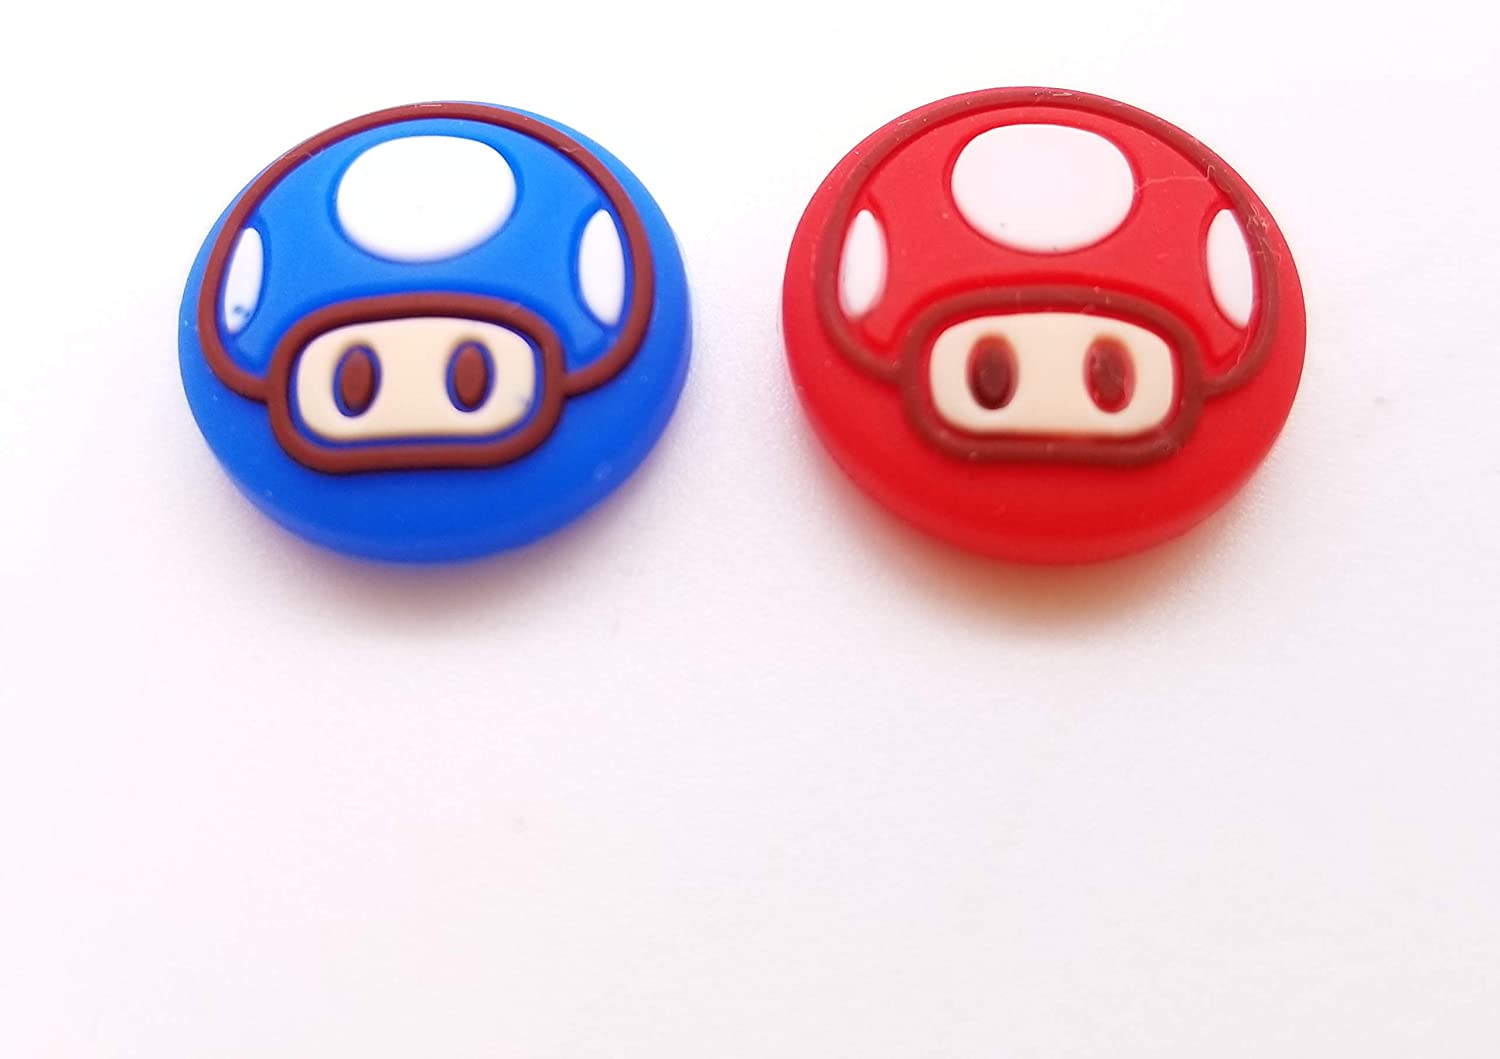 2PCS Silicone Joystick Thumb Stick Grips Cover Thumbstick Cap for Nintendo Switch Lite Console for Joy-Con Controller Joystisck Thumb Grip